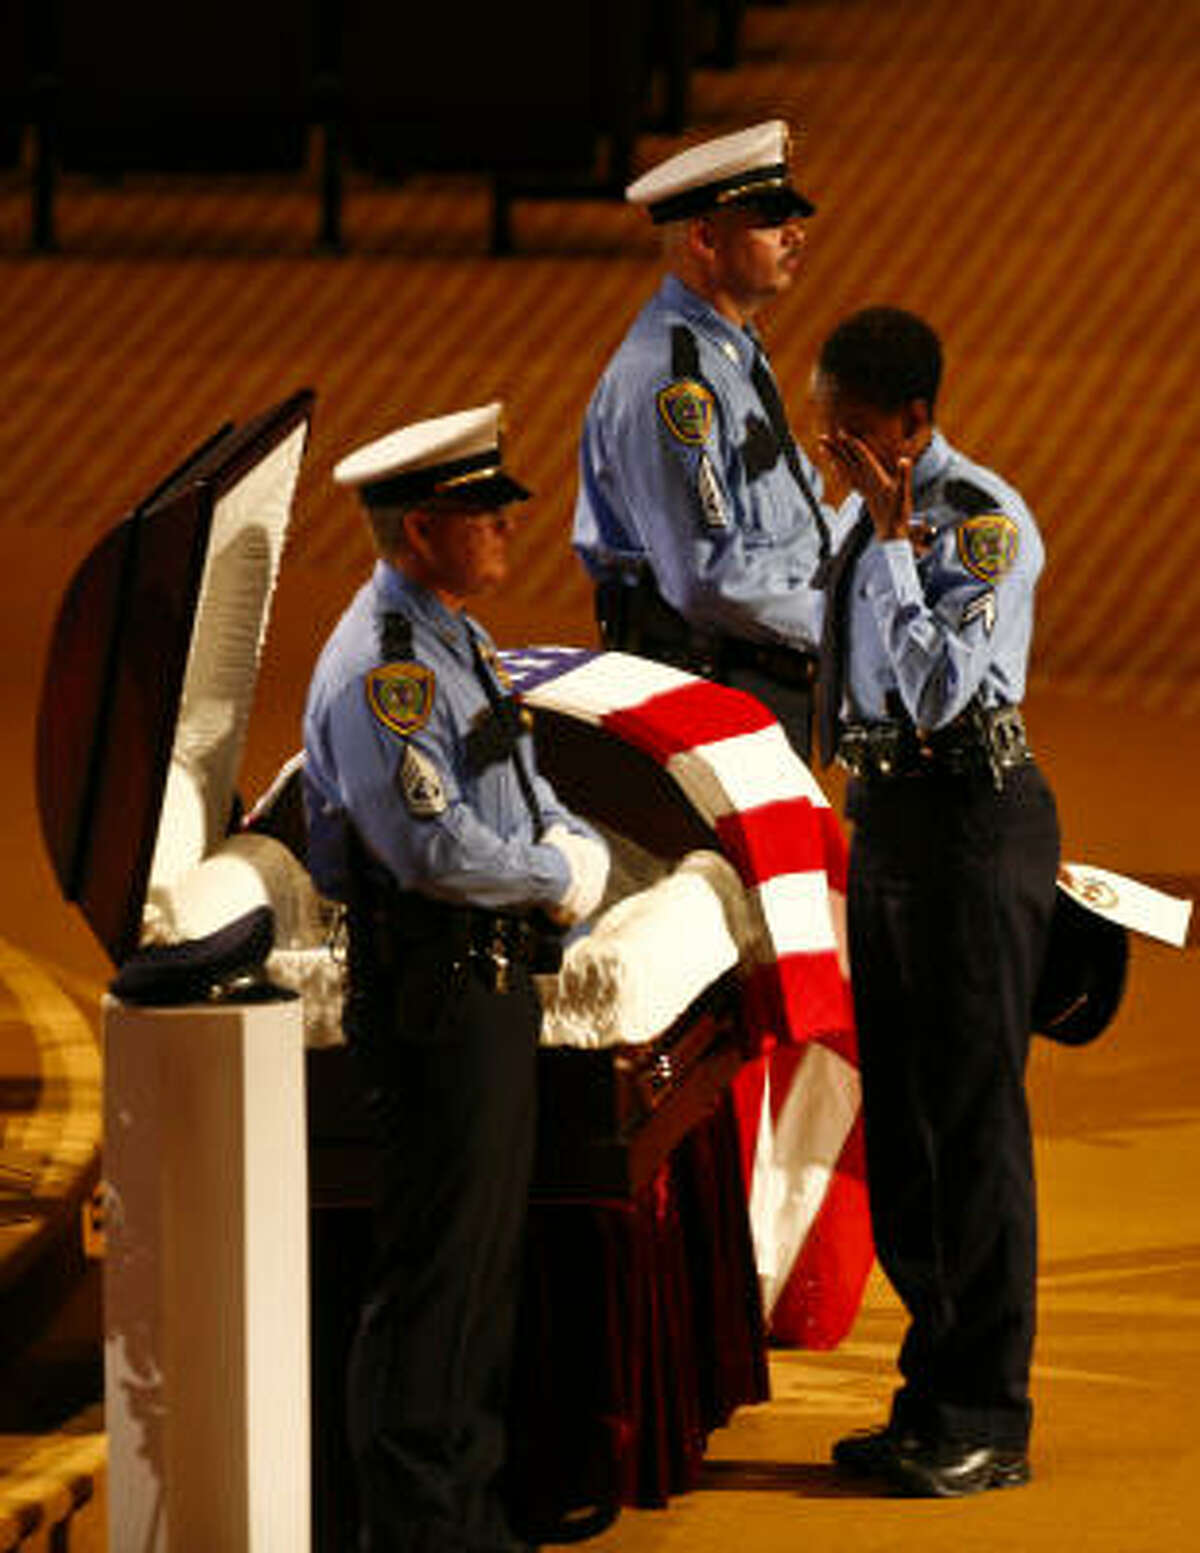 Police officer, Krystal Charles pays respect before the casket of HPD Senior Police Officer Henry Canales, 42, at Grace Community Church where funeral services for the fallen officer were held in Houston.